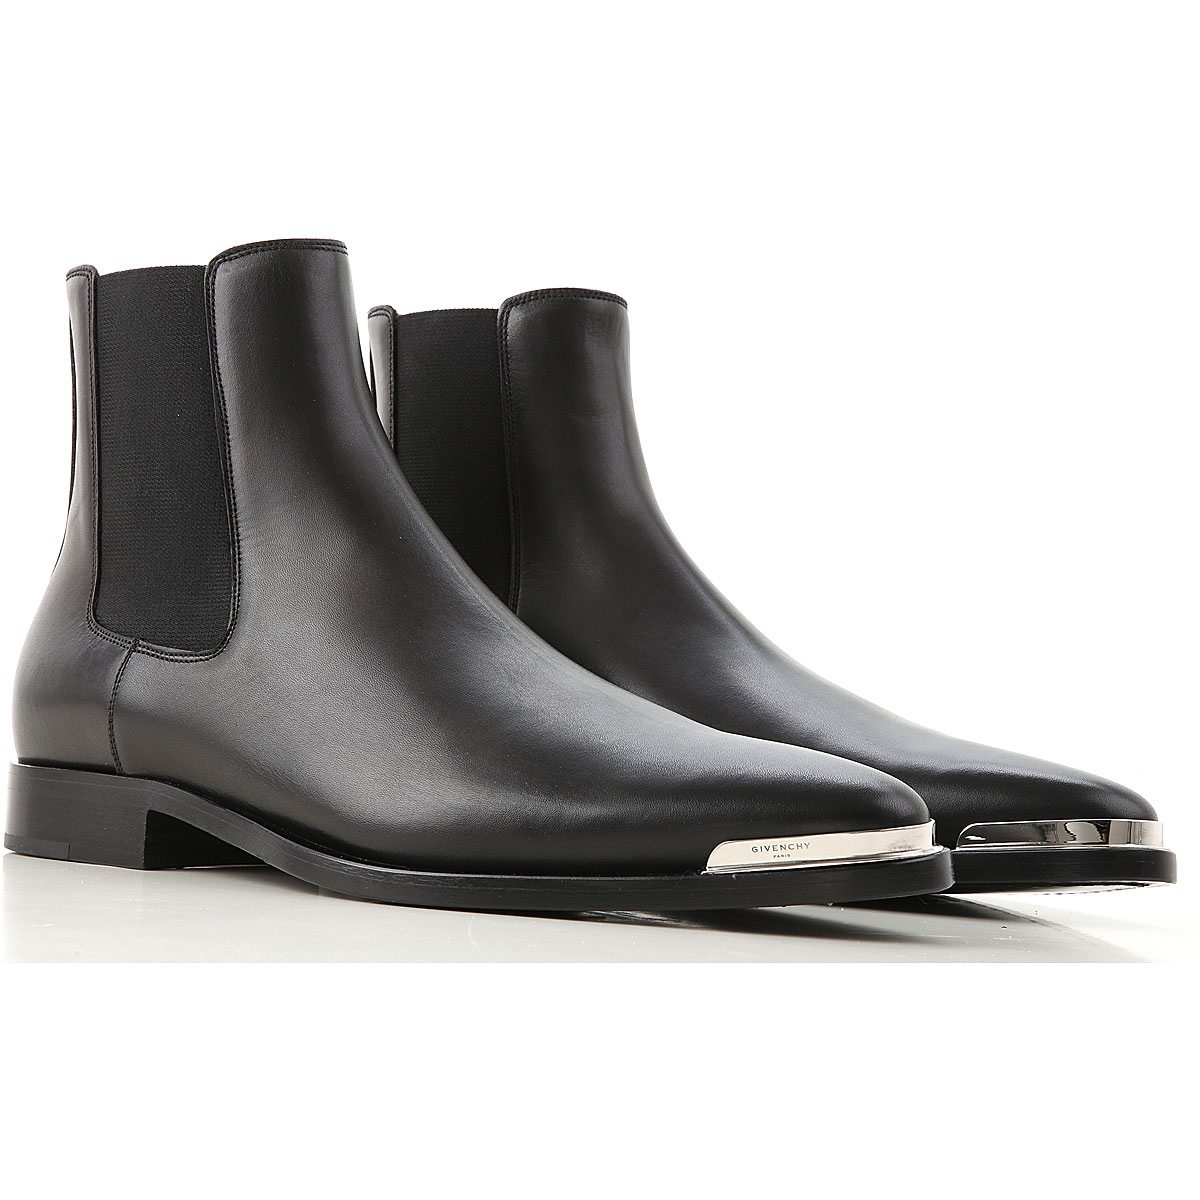 Givenchy Boots for Men Booties SE - GOOFASH